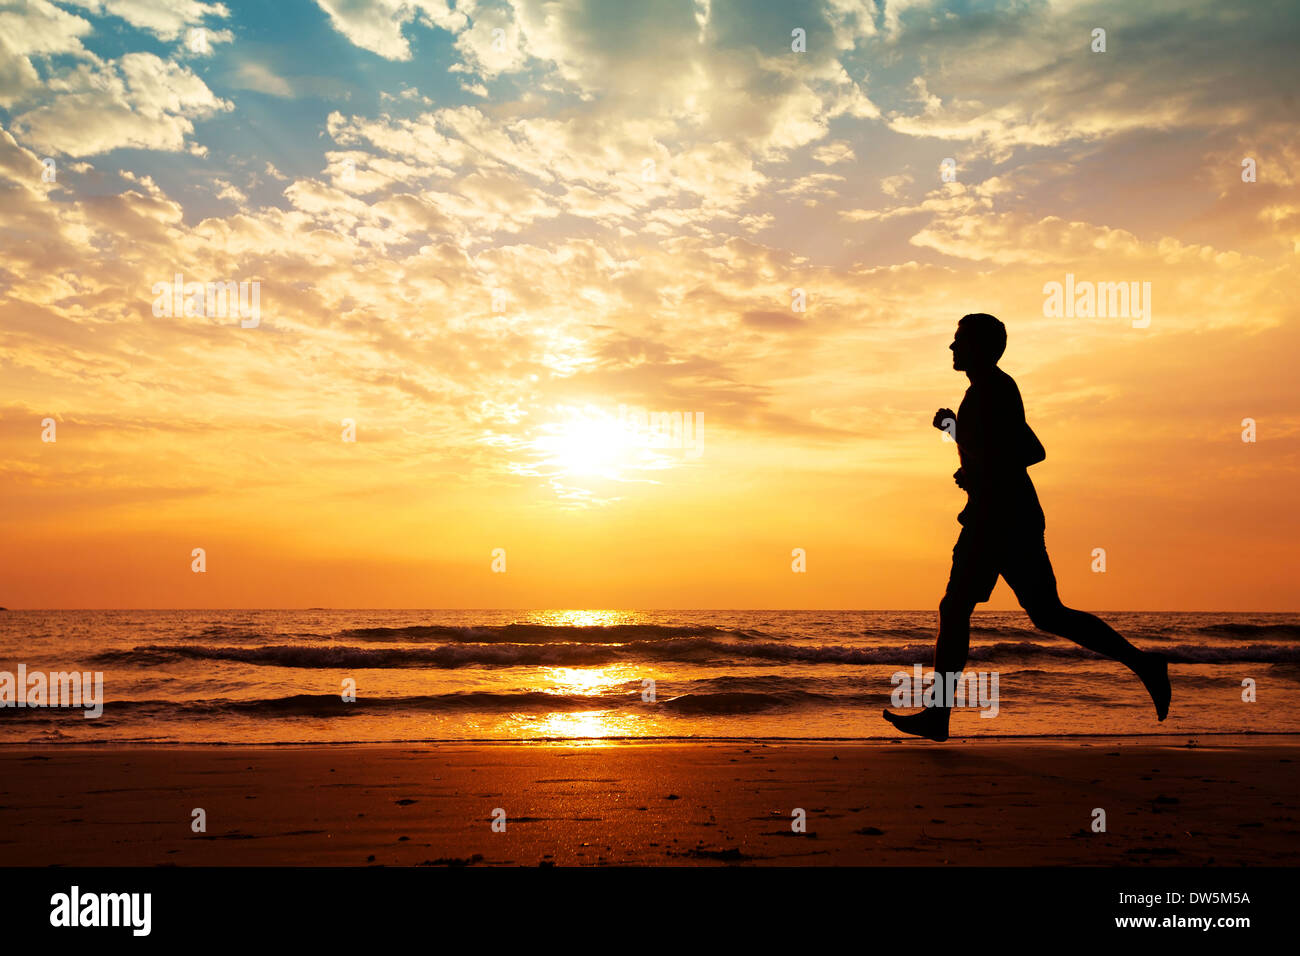 silhouette of man running on the beach at sunset Stock Photo